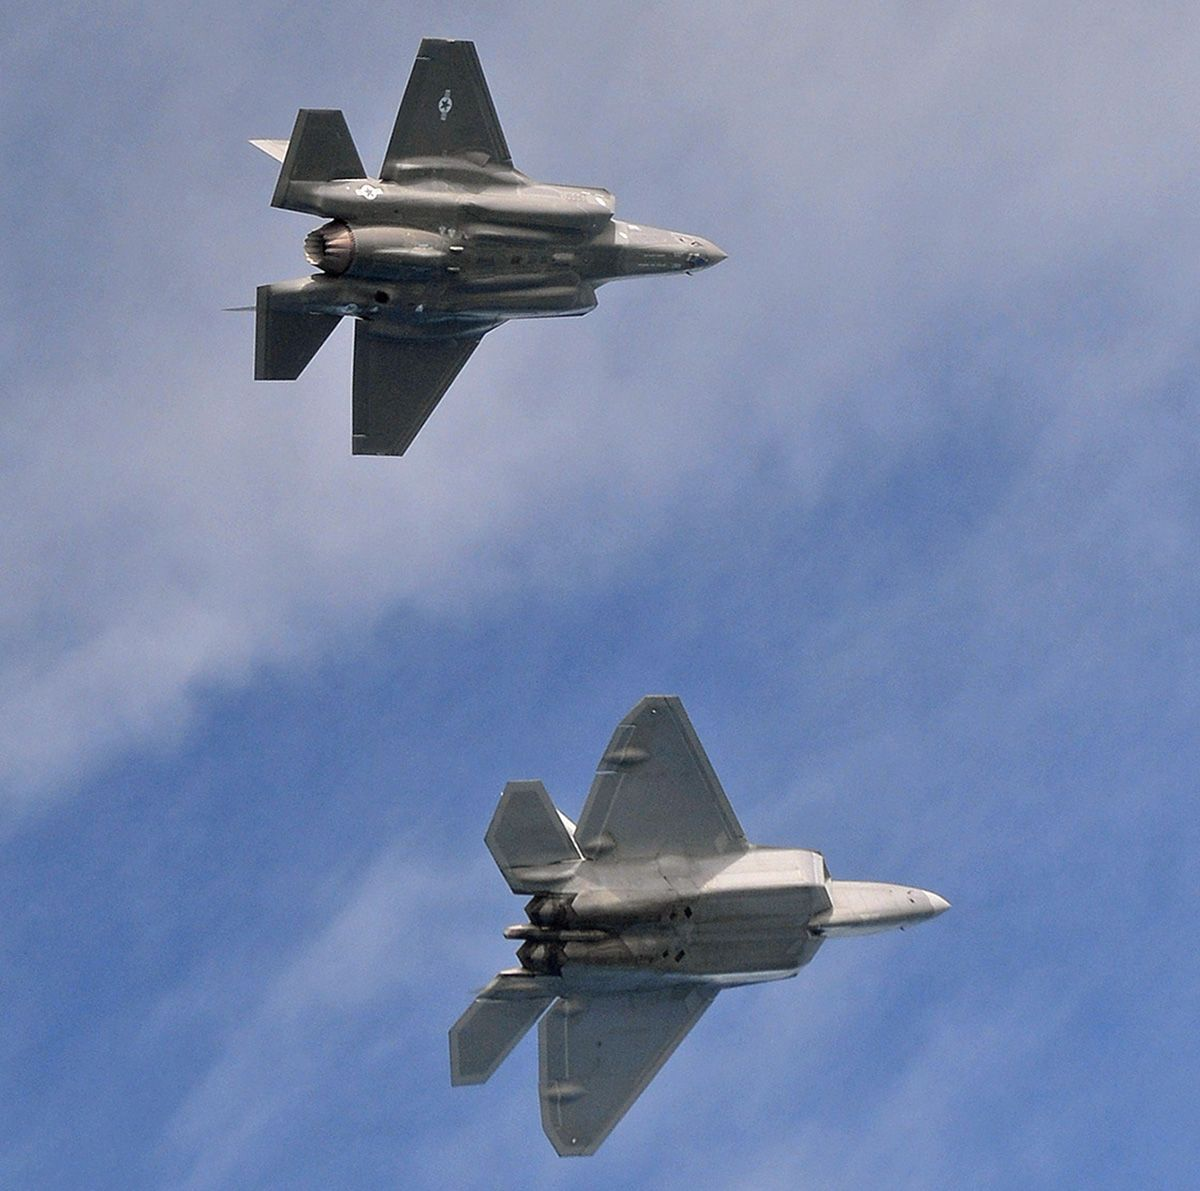 The underside of the F-22 is much flatter than that of an F-35.  Photo by MSgt. Shane A. Cuomo